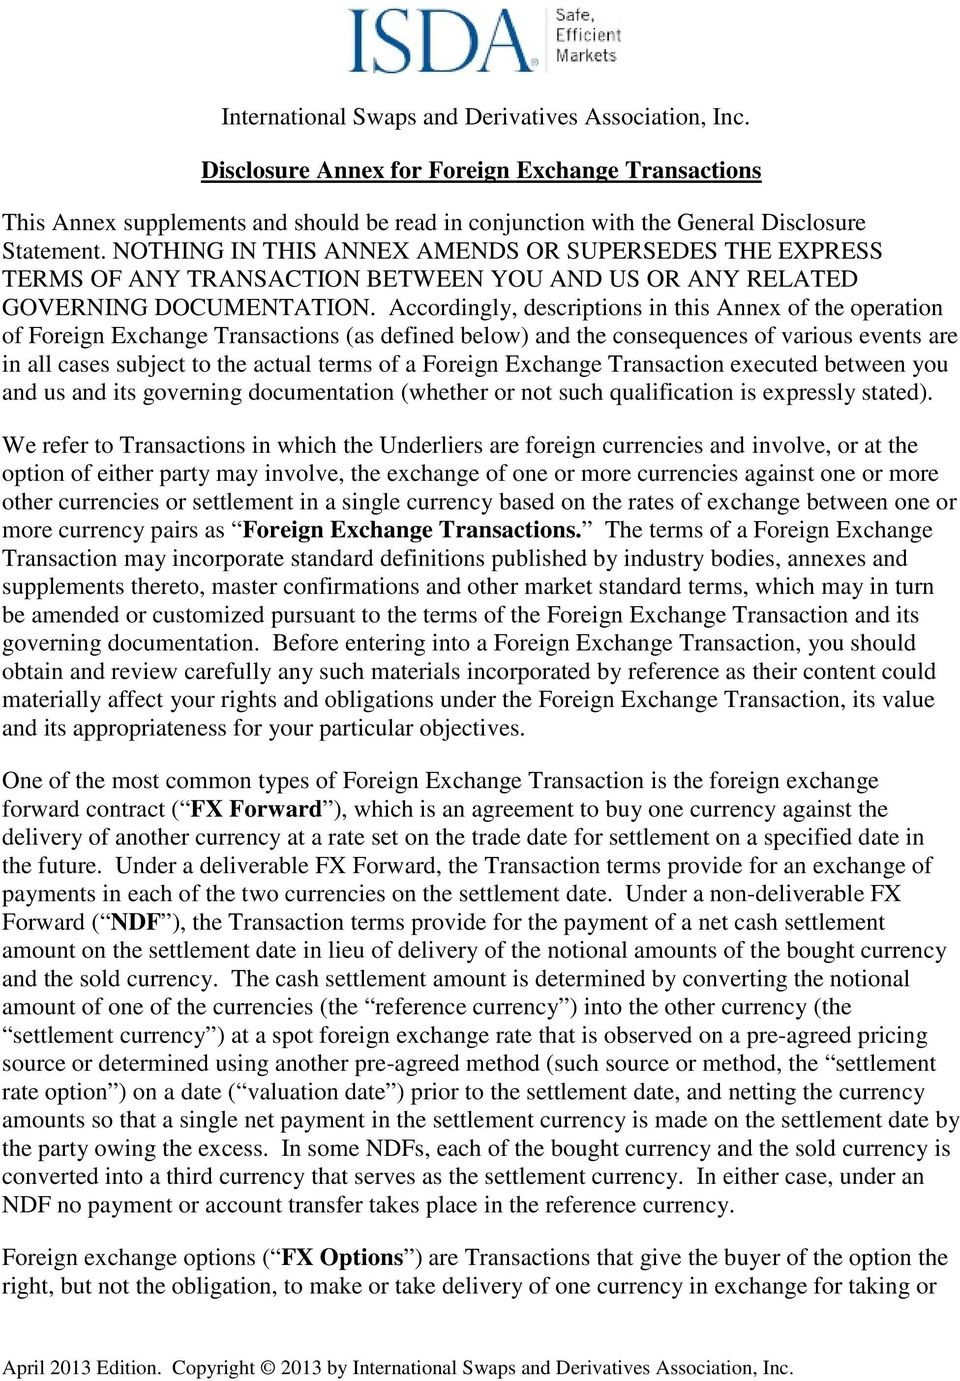 Accordingly, descriptions in this Annex of the operation of Foreign Exchange Transactions (as defined below) and the consequences of various events are in all cases subject to the actual terms of a